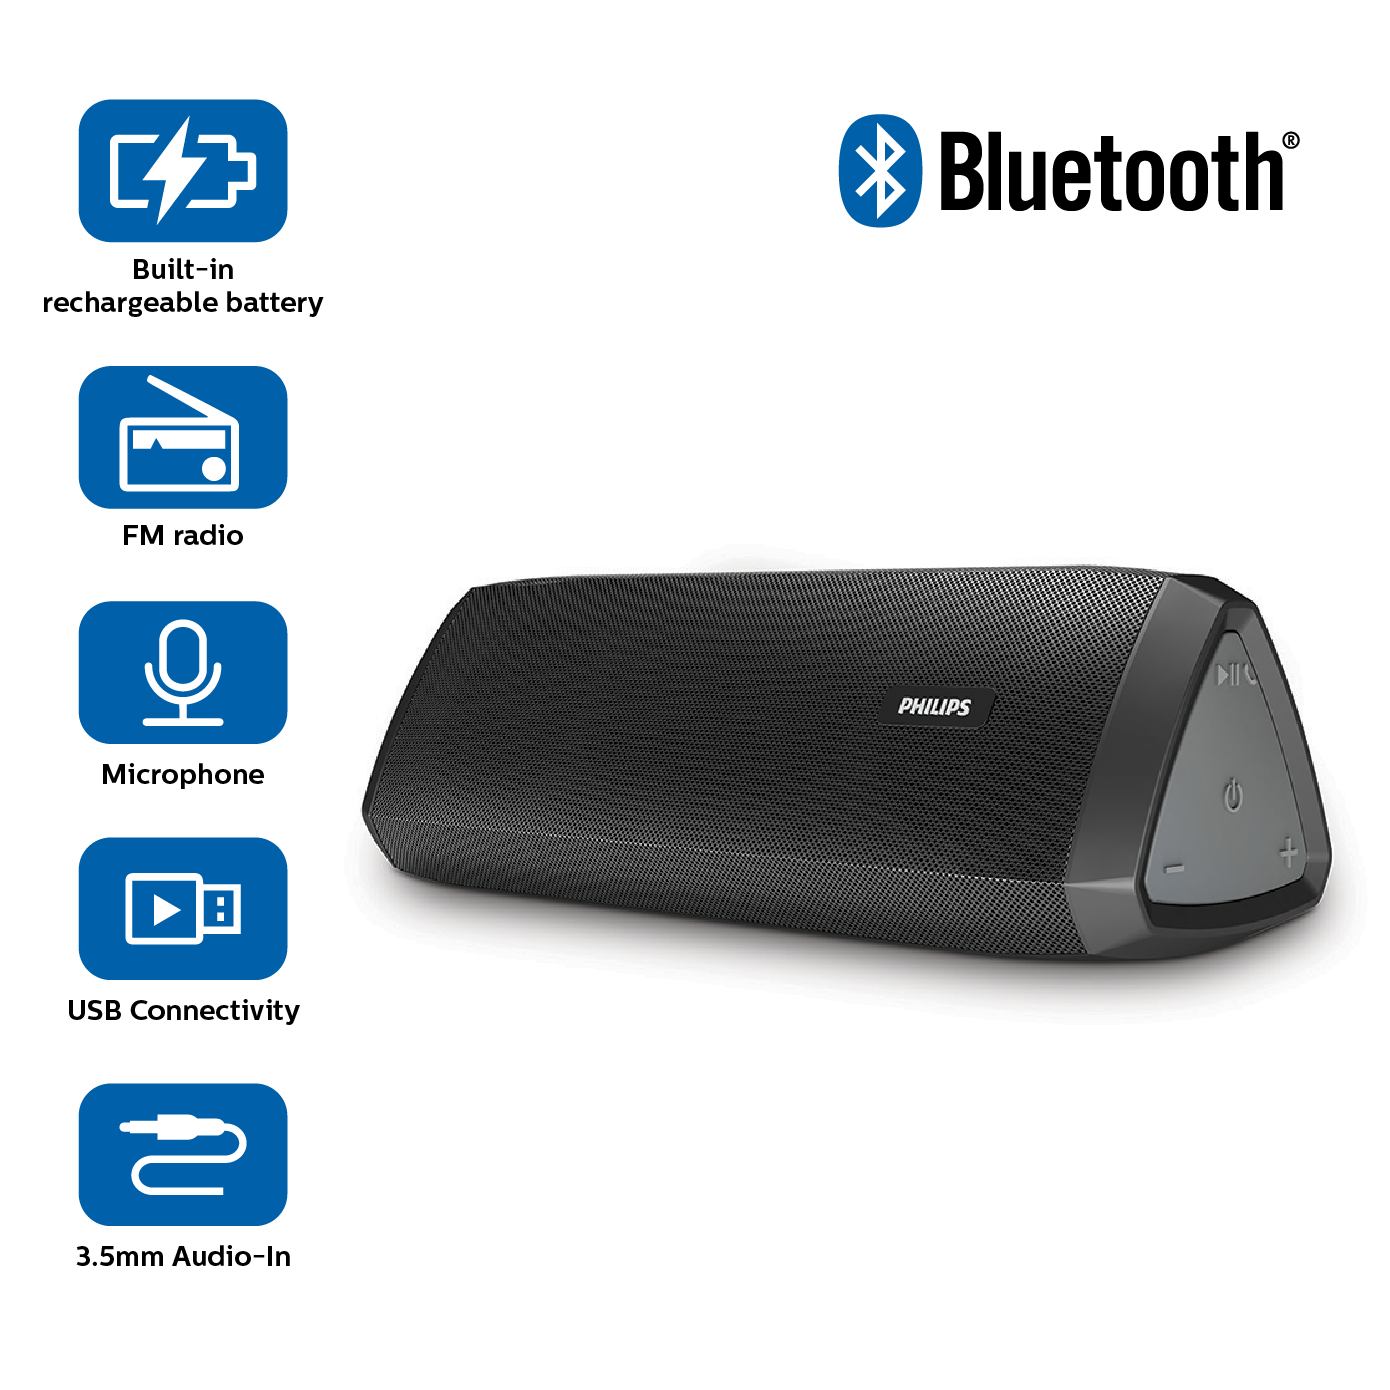 Philips Bluetooth Speaker Portable: Philips BT122/94 Wireless Portable Speaker: Amazon.in: Electronics